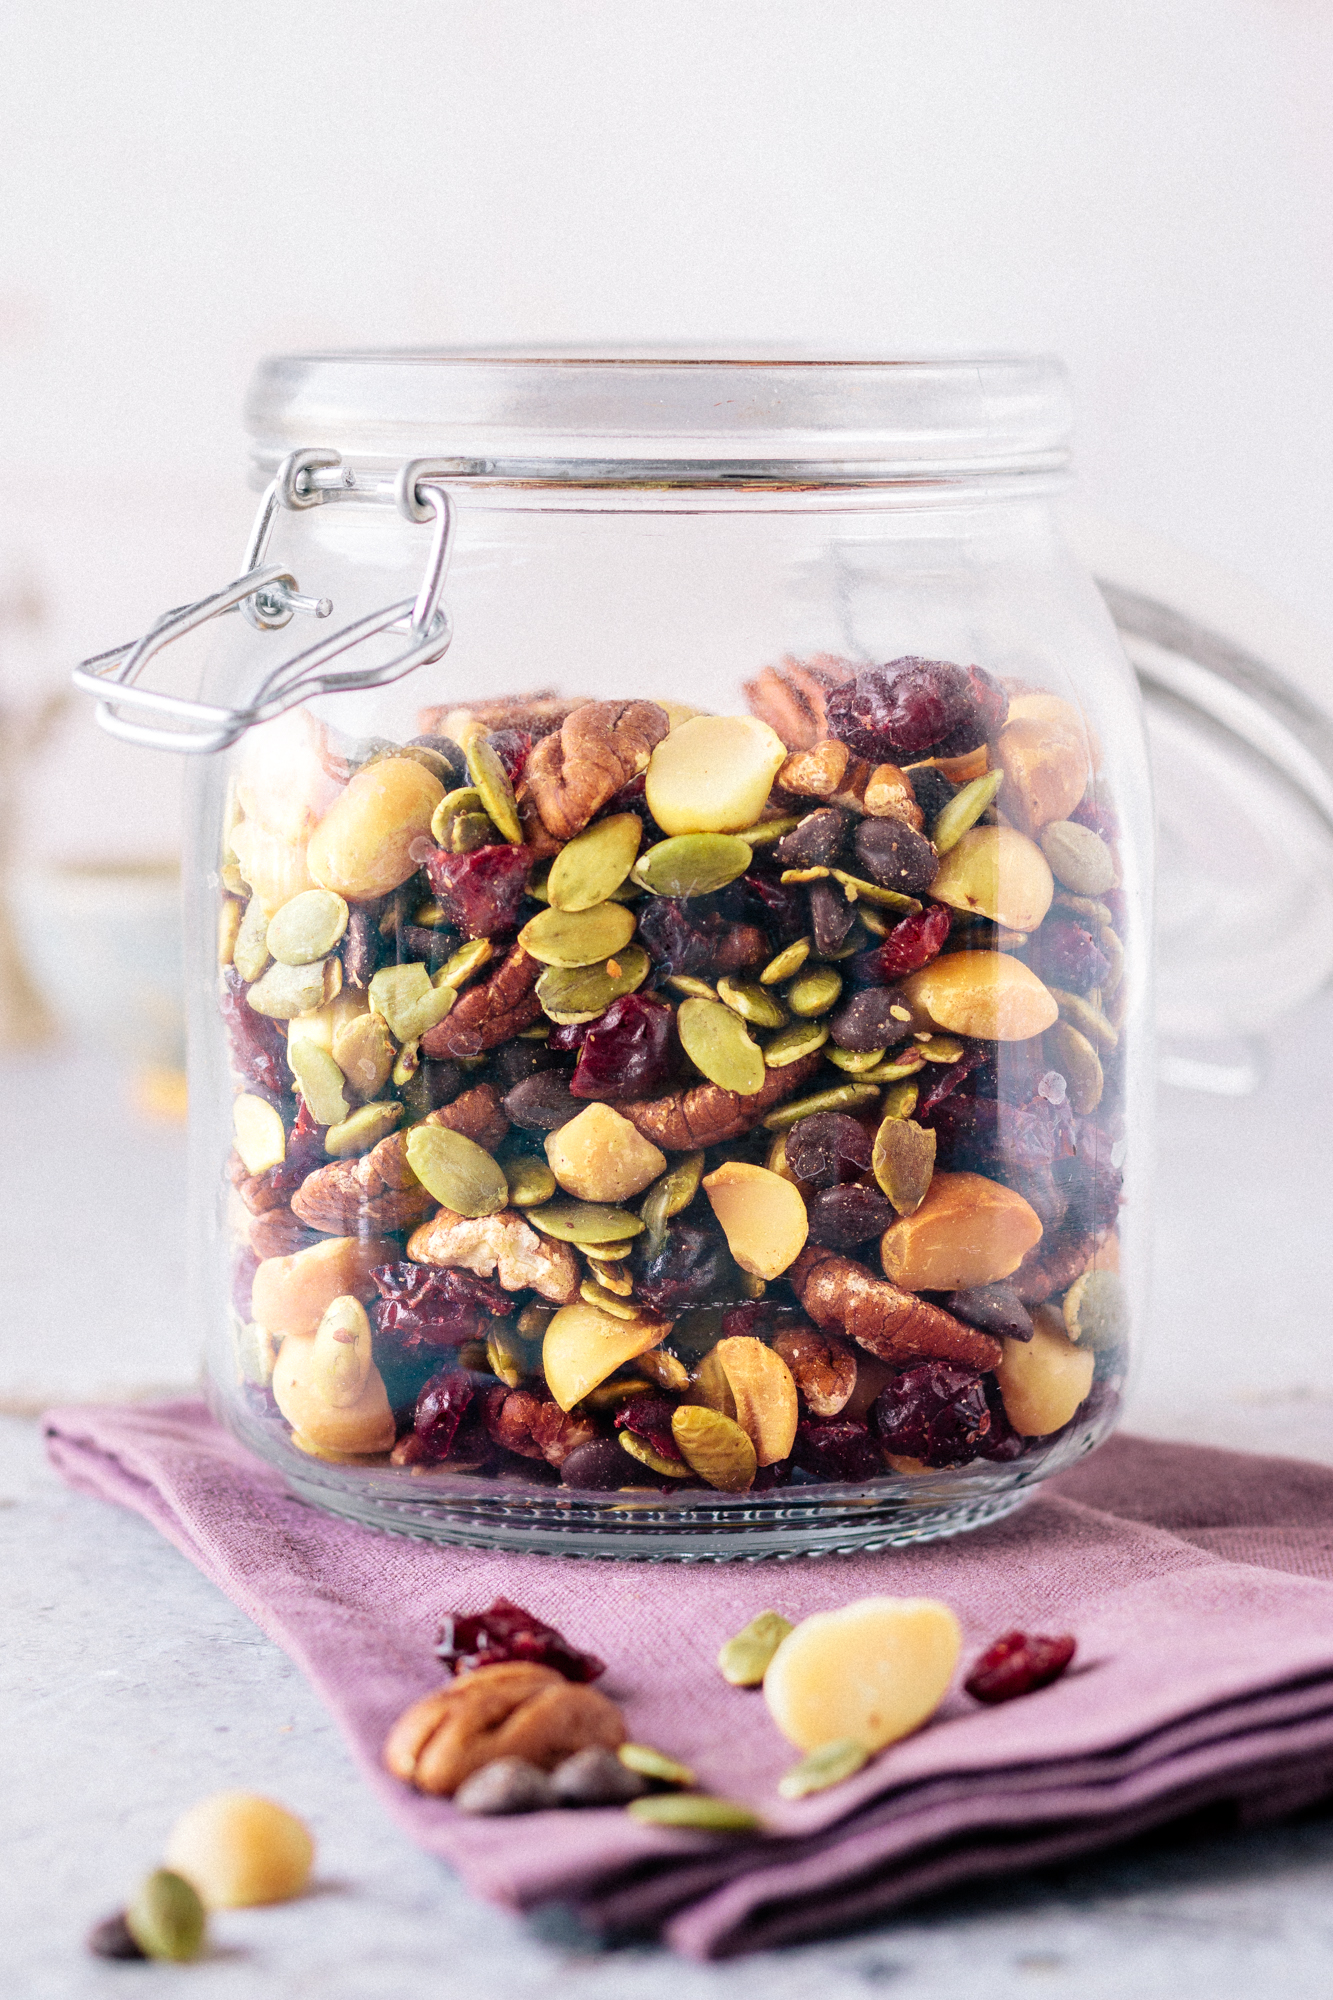 Trail Mix Autumn/Fall Edition